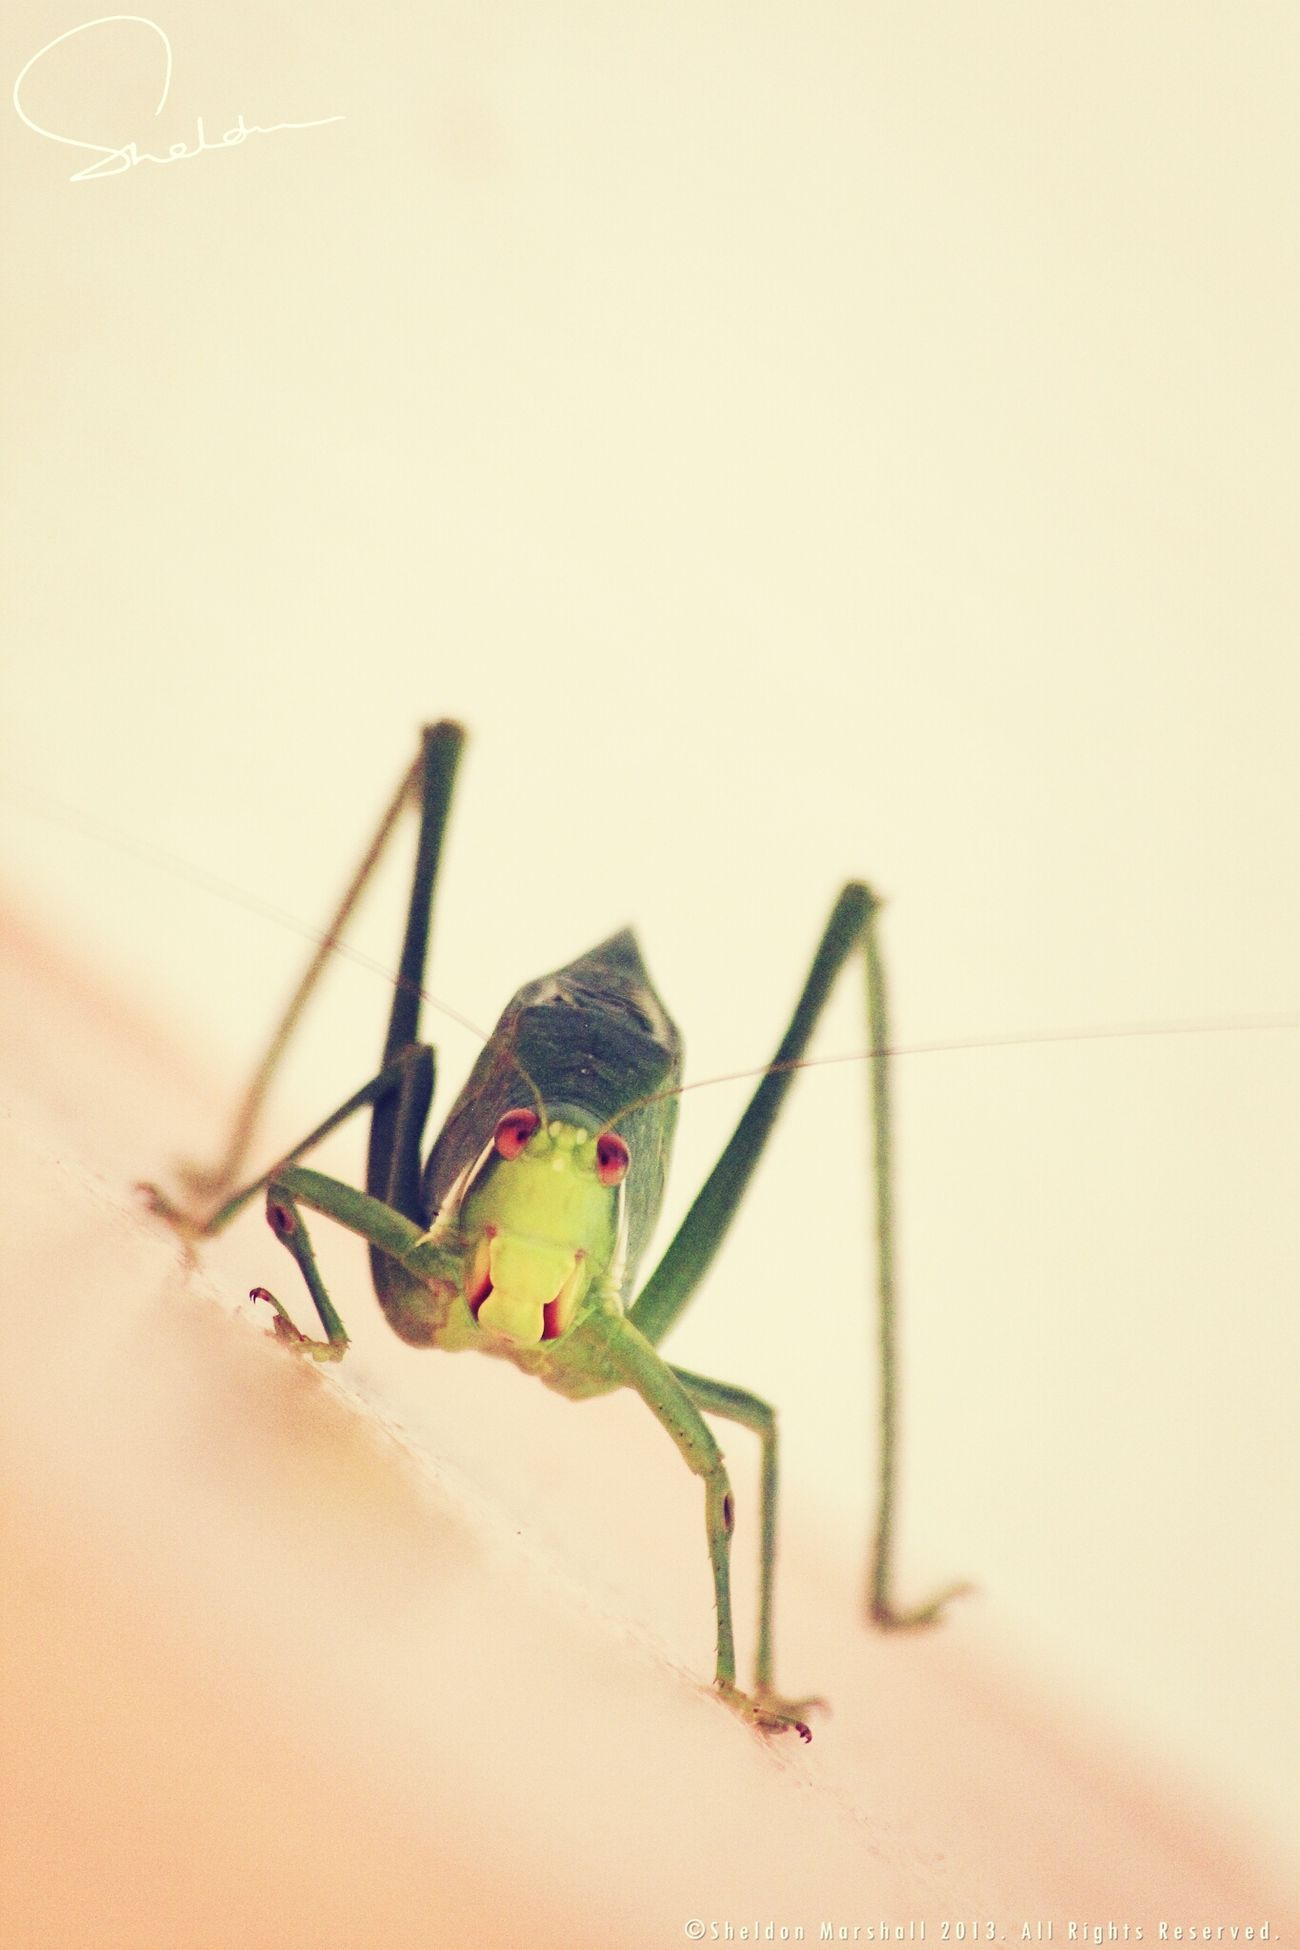 Giant grasshopper in Dominica Insects  Macro NEXTshotPhotos Eye4photography